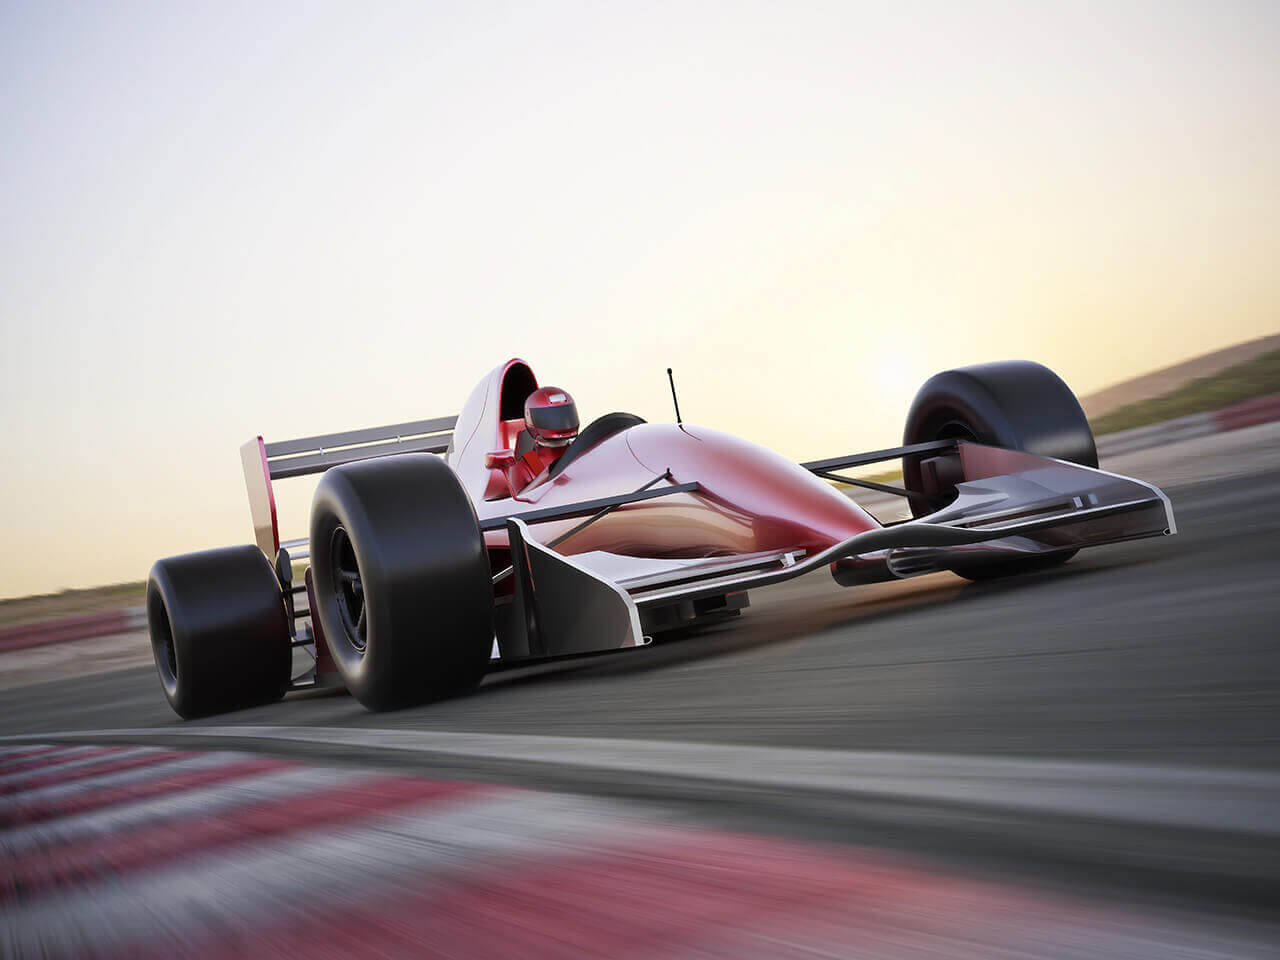 Motorsports can benefit from flexible aluminium honeycomb